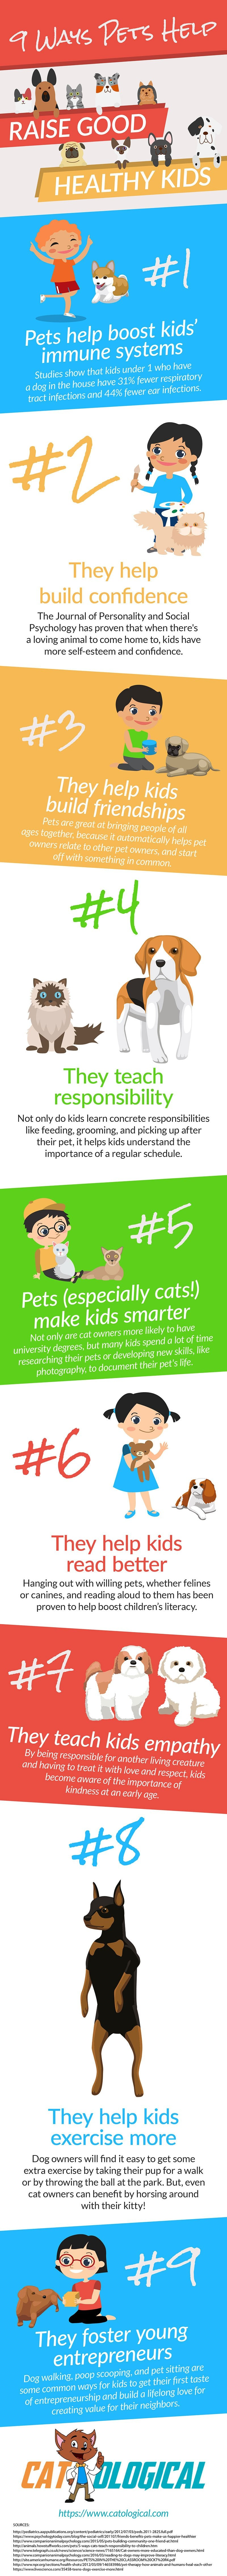 Infographic of 9 ways pets help raise healthy kids from catalogical.com